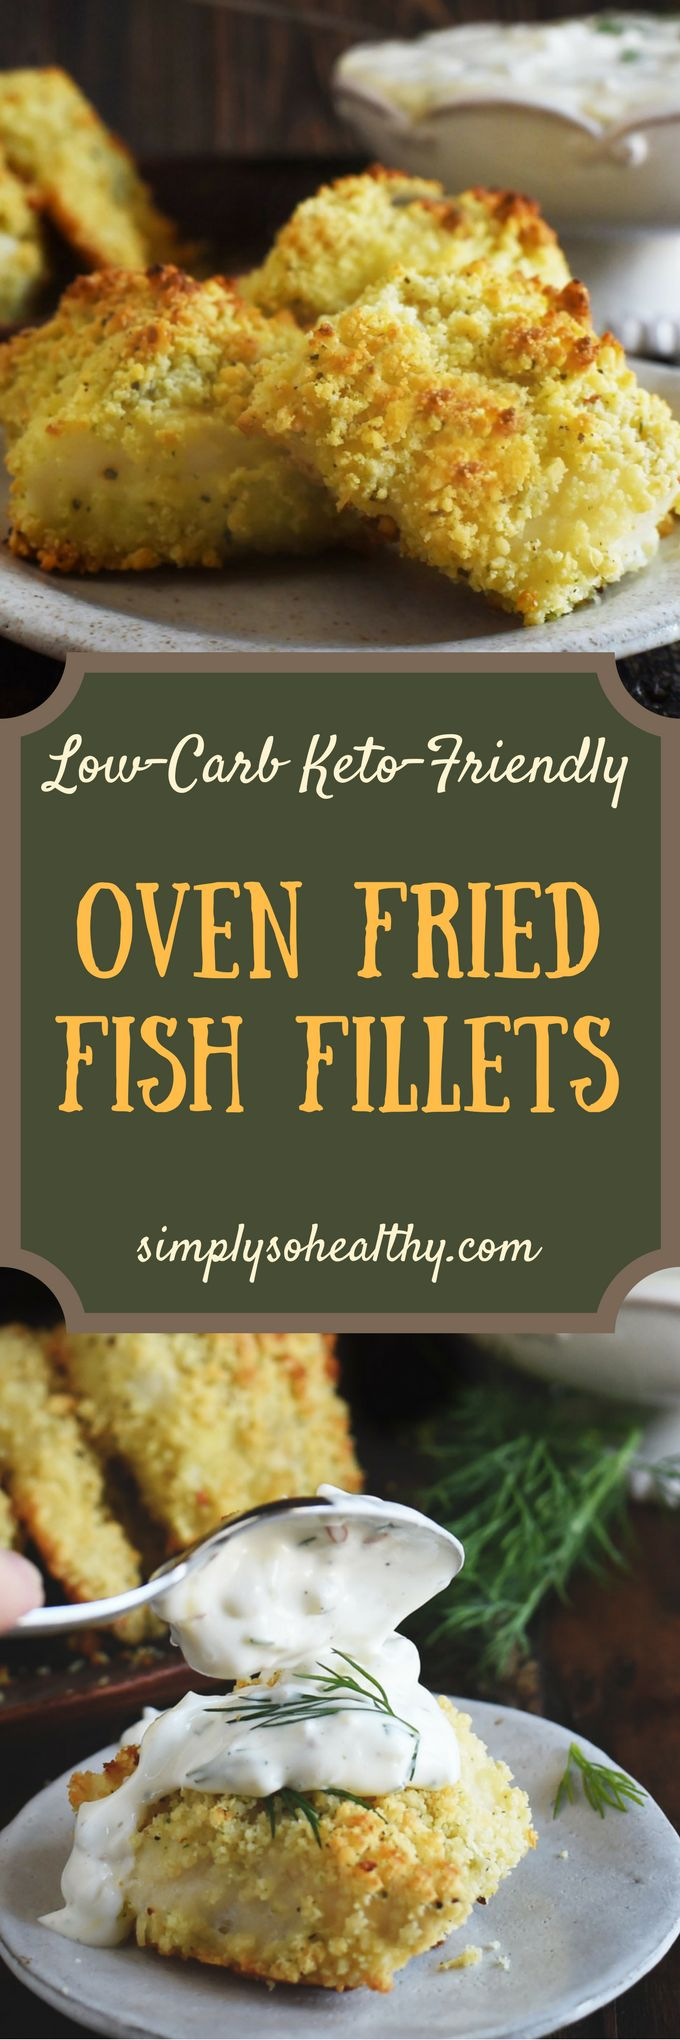 Low Carb Oven Fried Fish Fillets Recipe Fried Fish